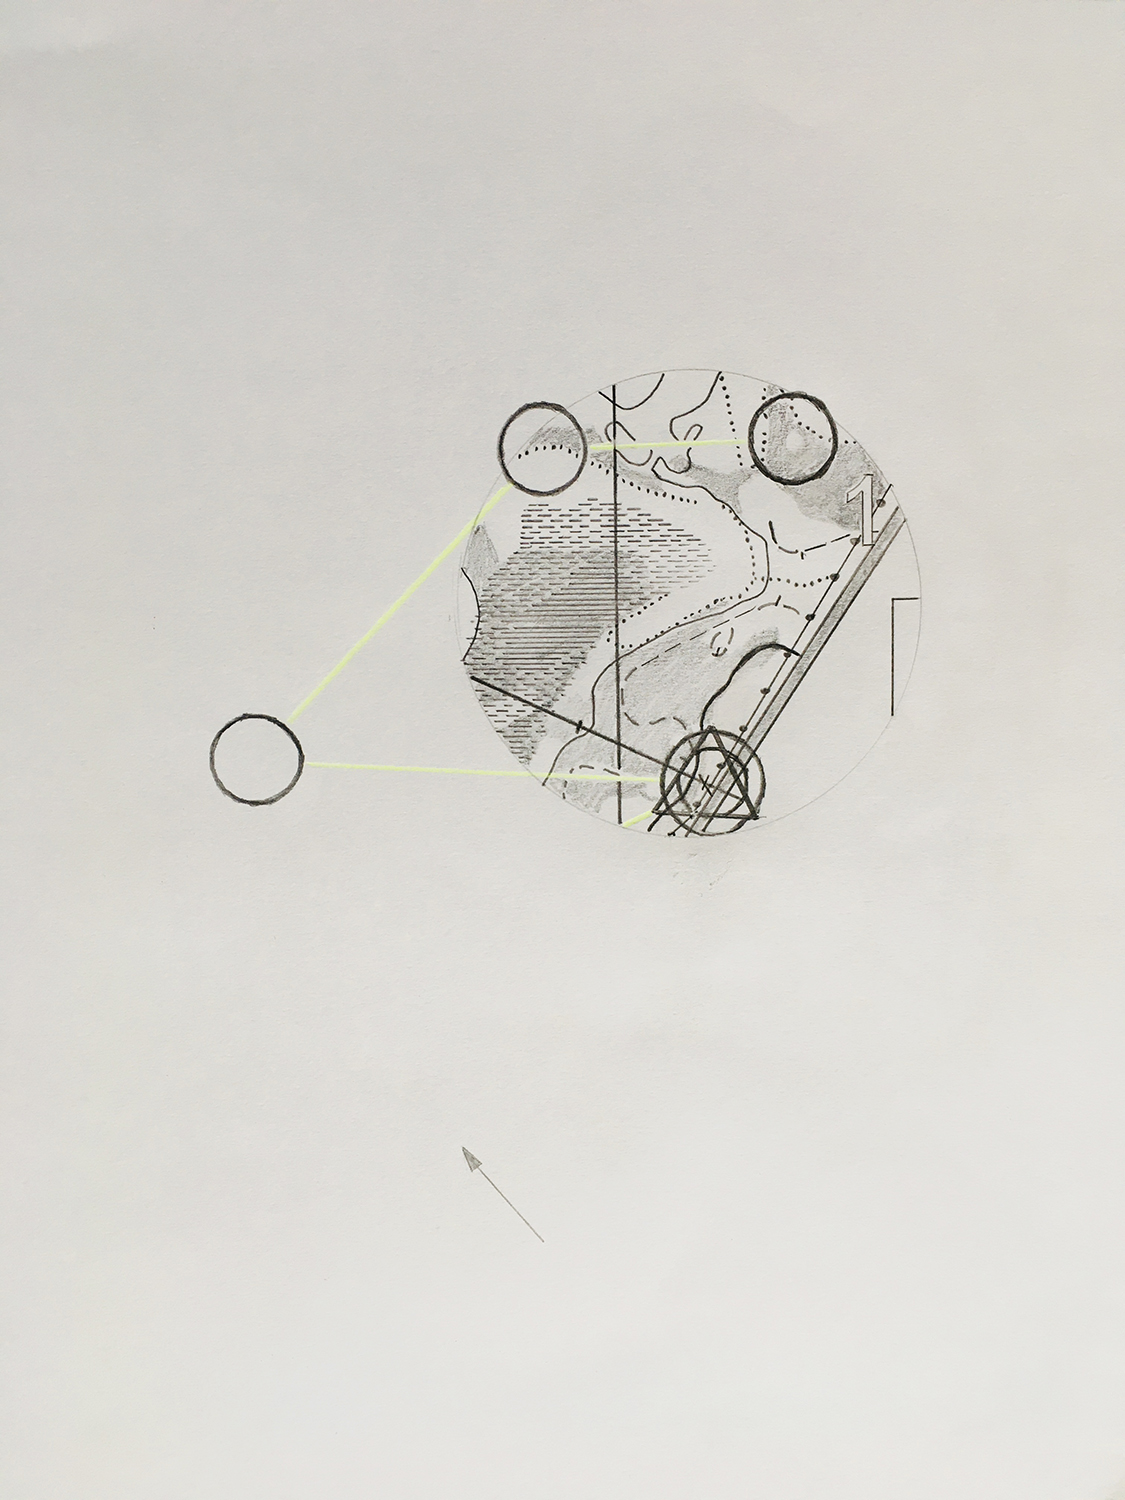 A pencil drawing of part of an orienteering map